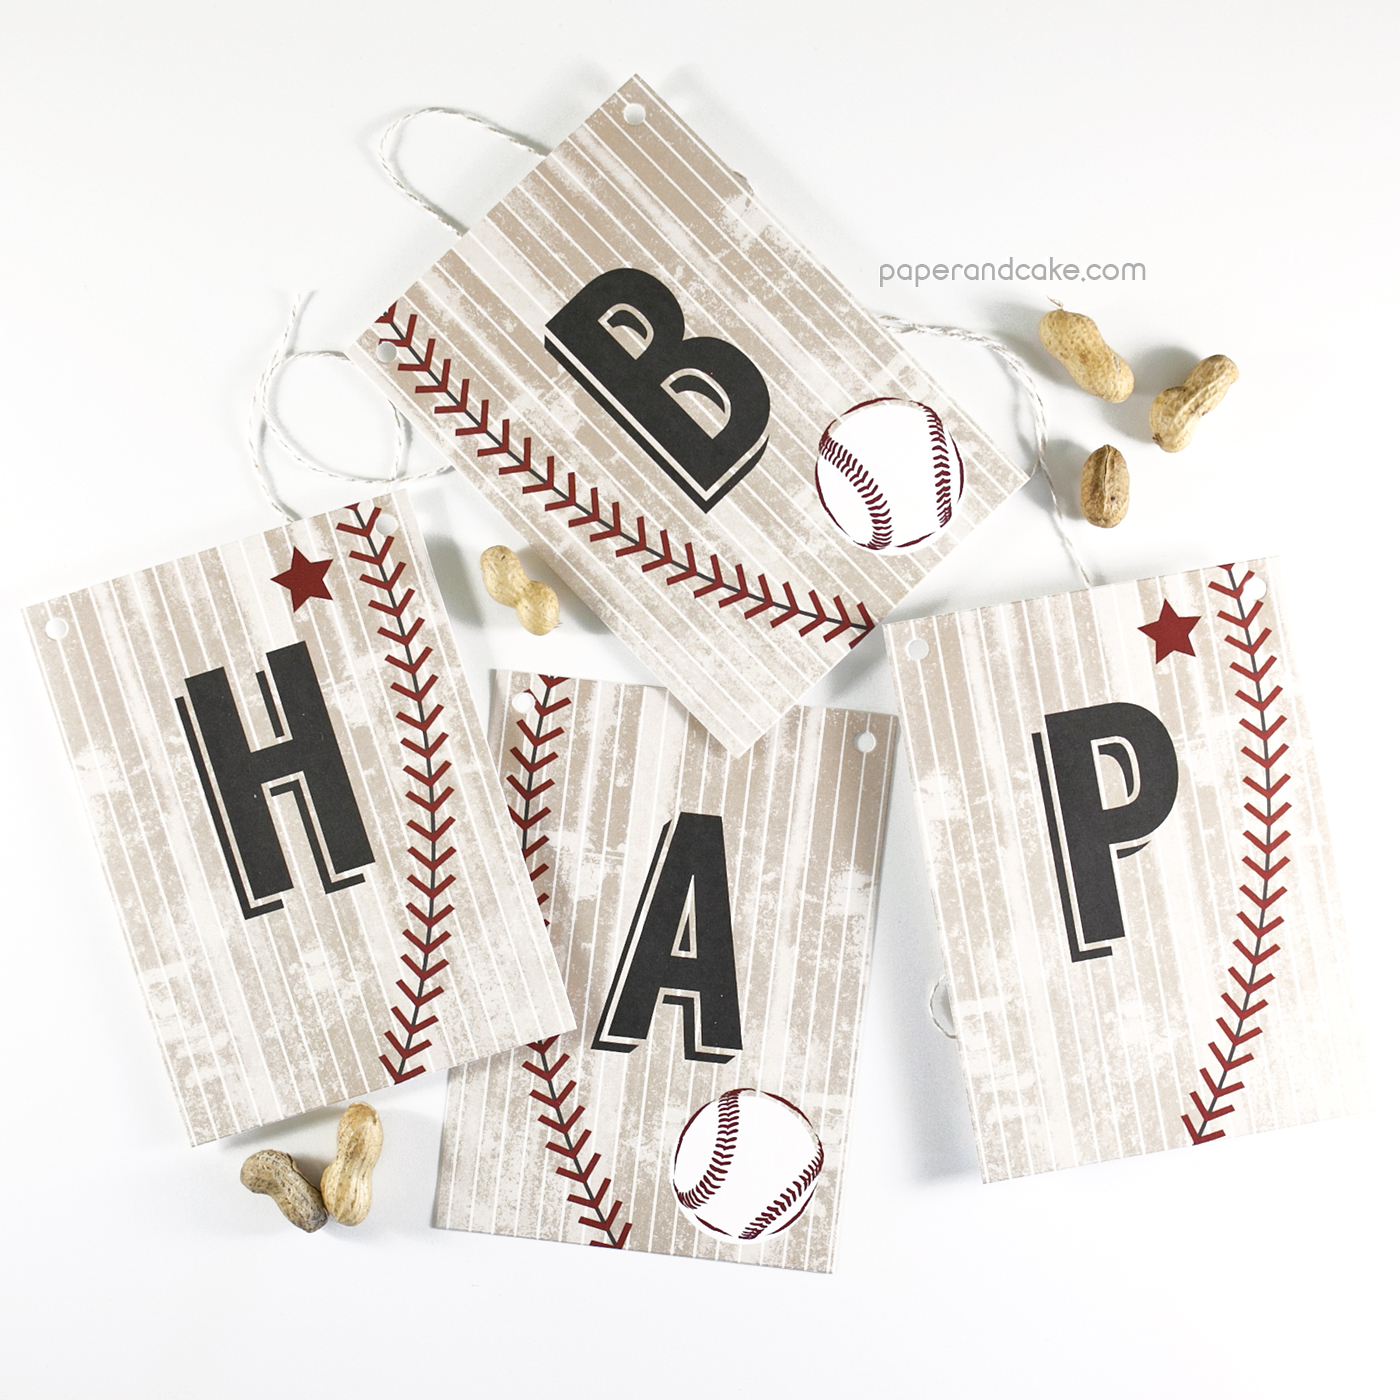 baseball happy birthday pennant banner paper and cake paper and cake